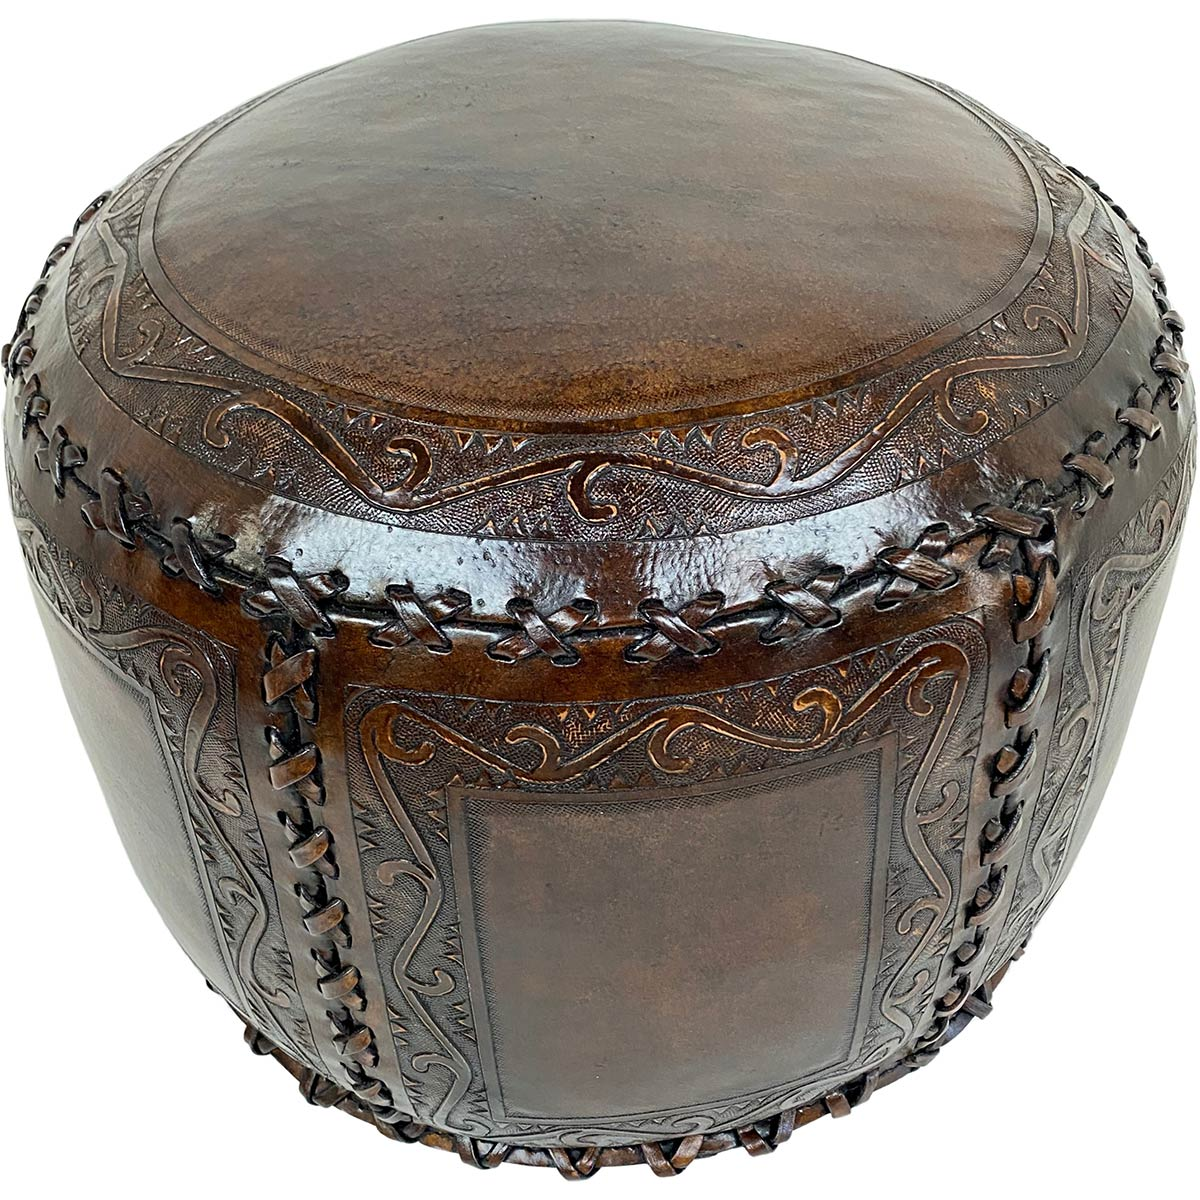 Large Round Classic Stitch Ottoman - Antique Brown